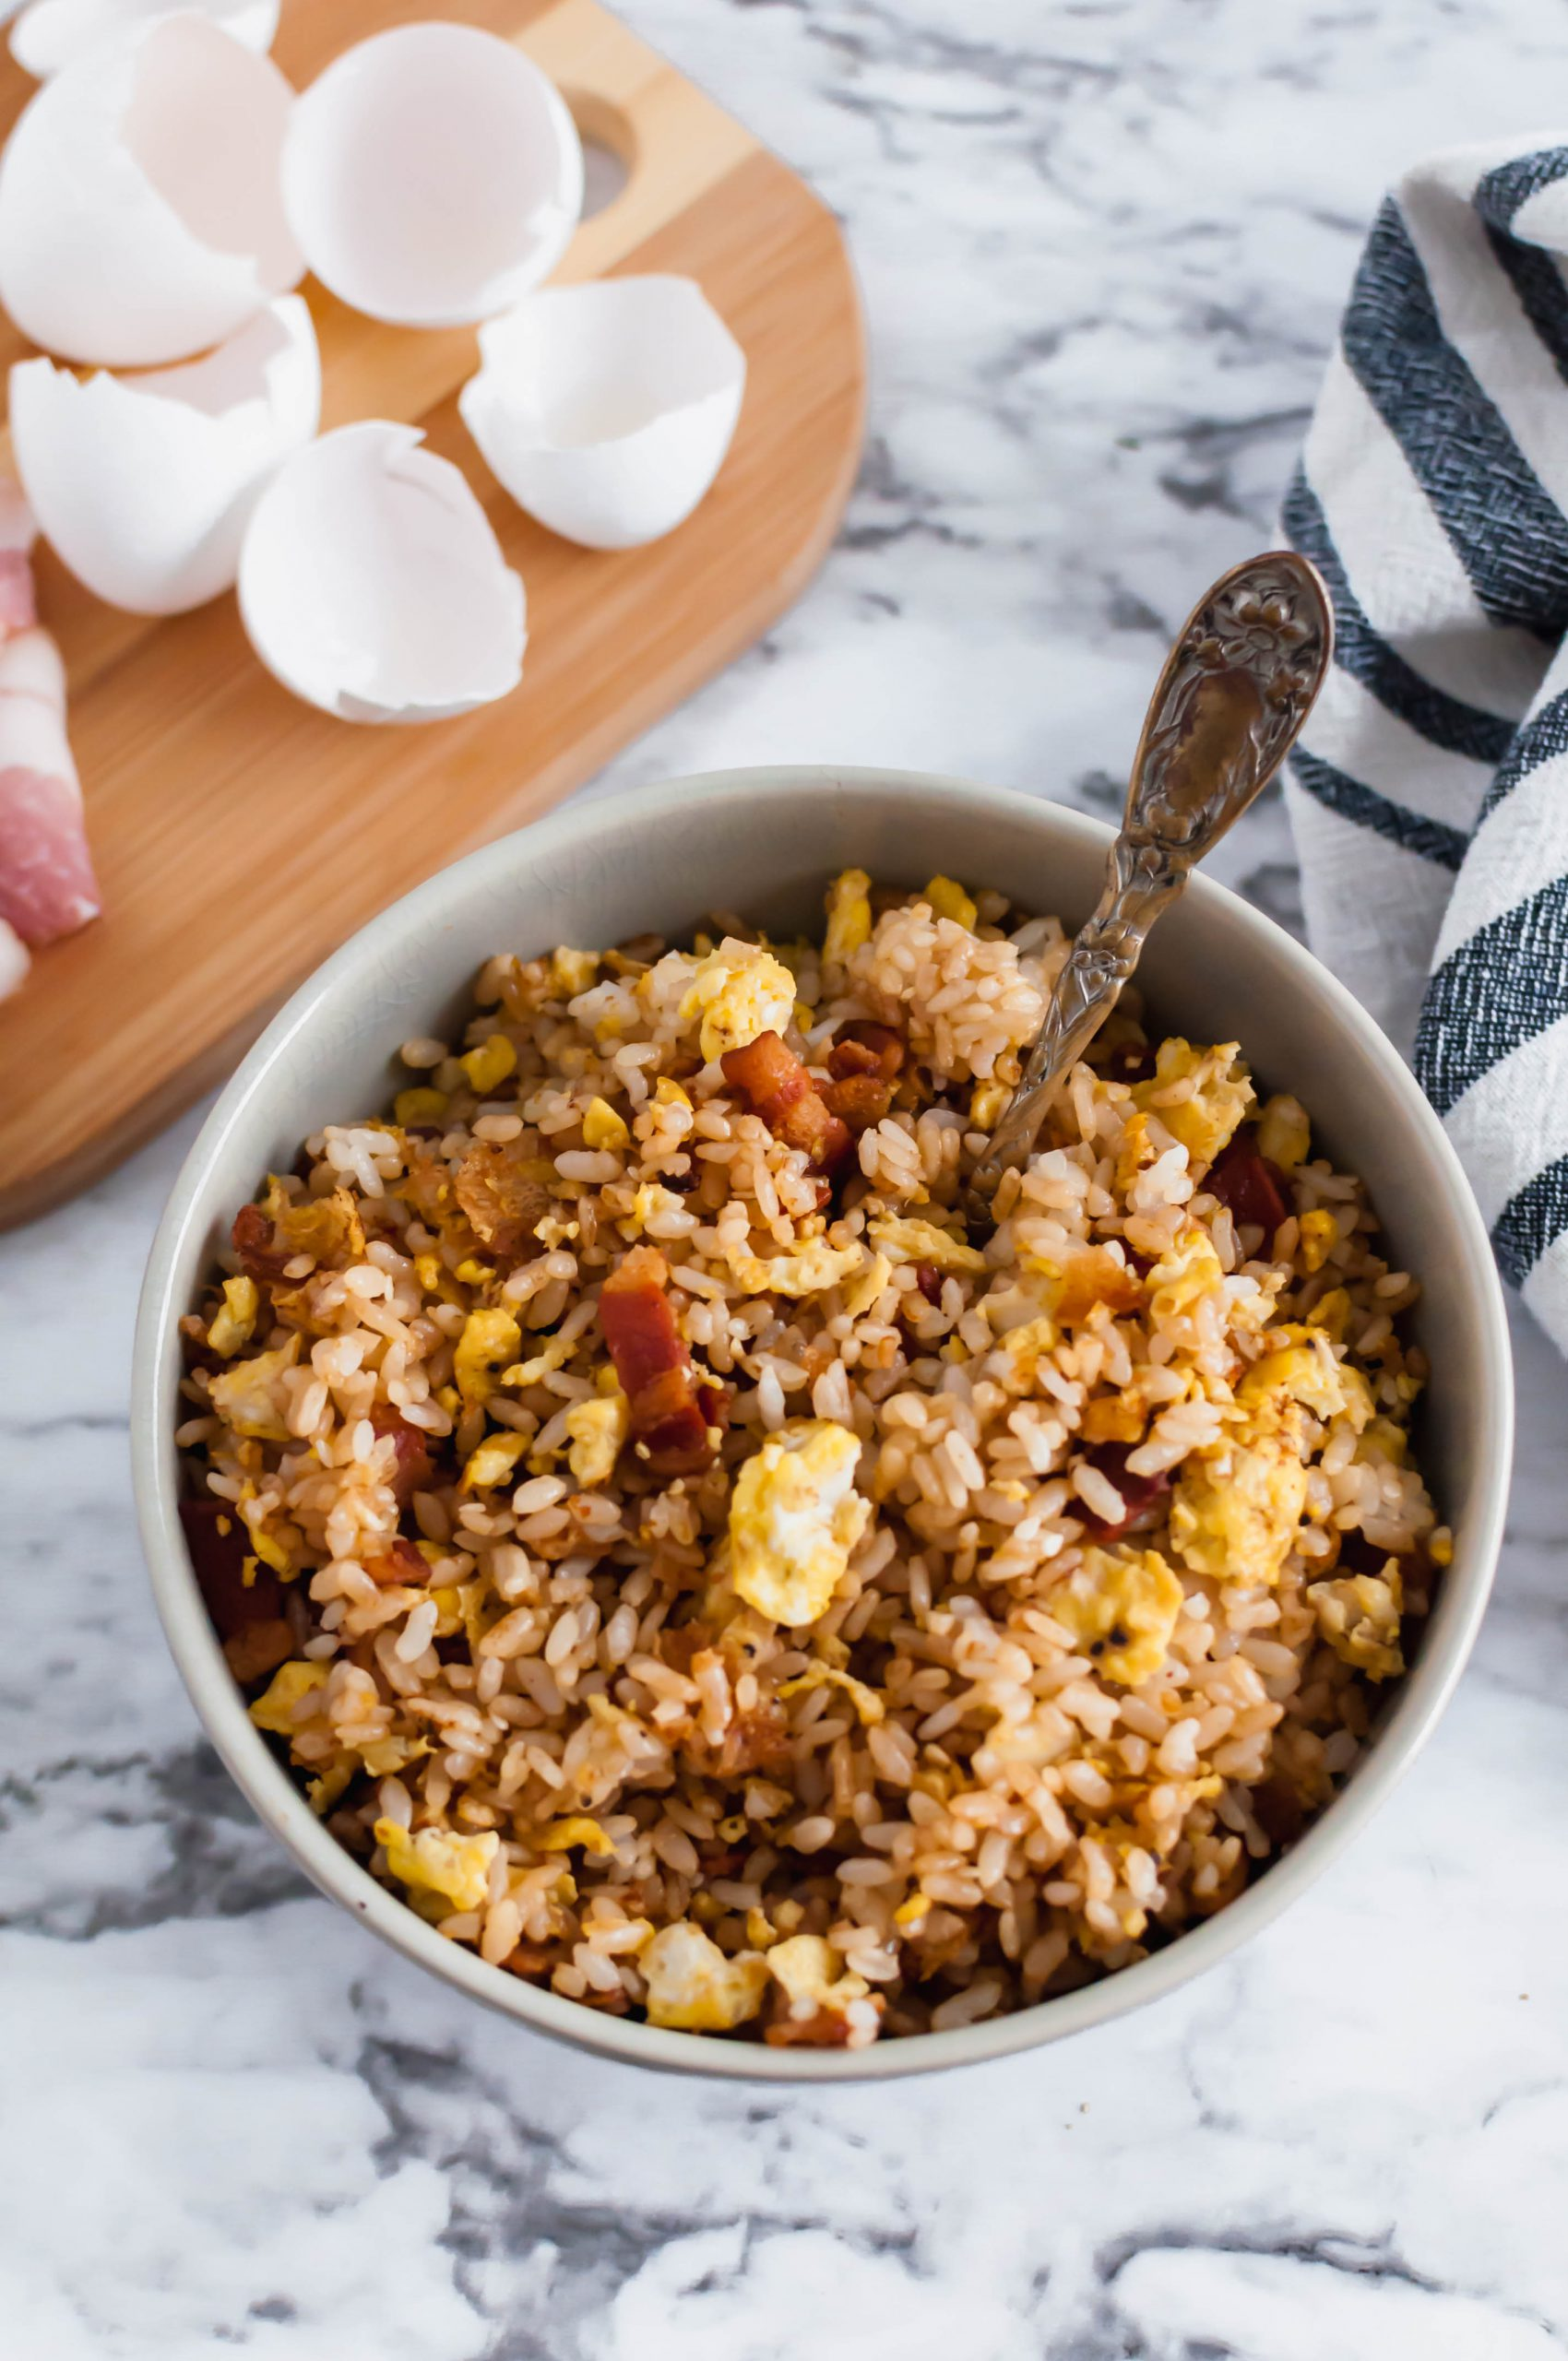 Another savory breakfast for you coming in hot. This Breakfast Fried Rice is packed with scrambled eggs and lots of crispy bacon. A glorious way to start your day.